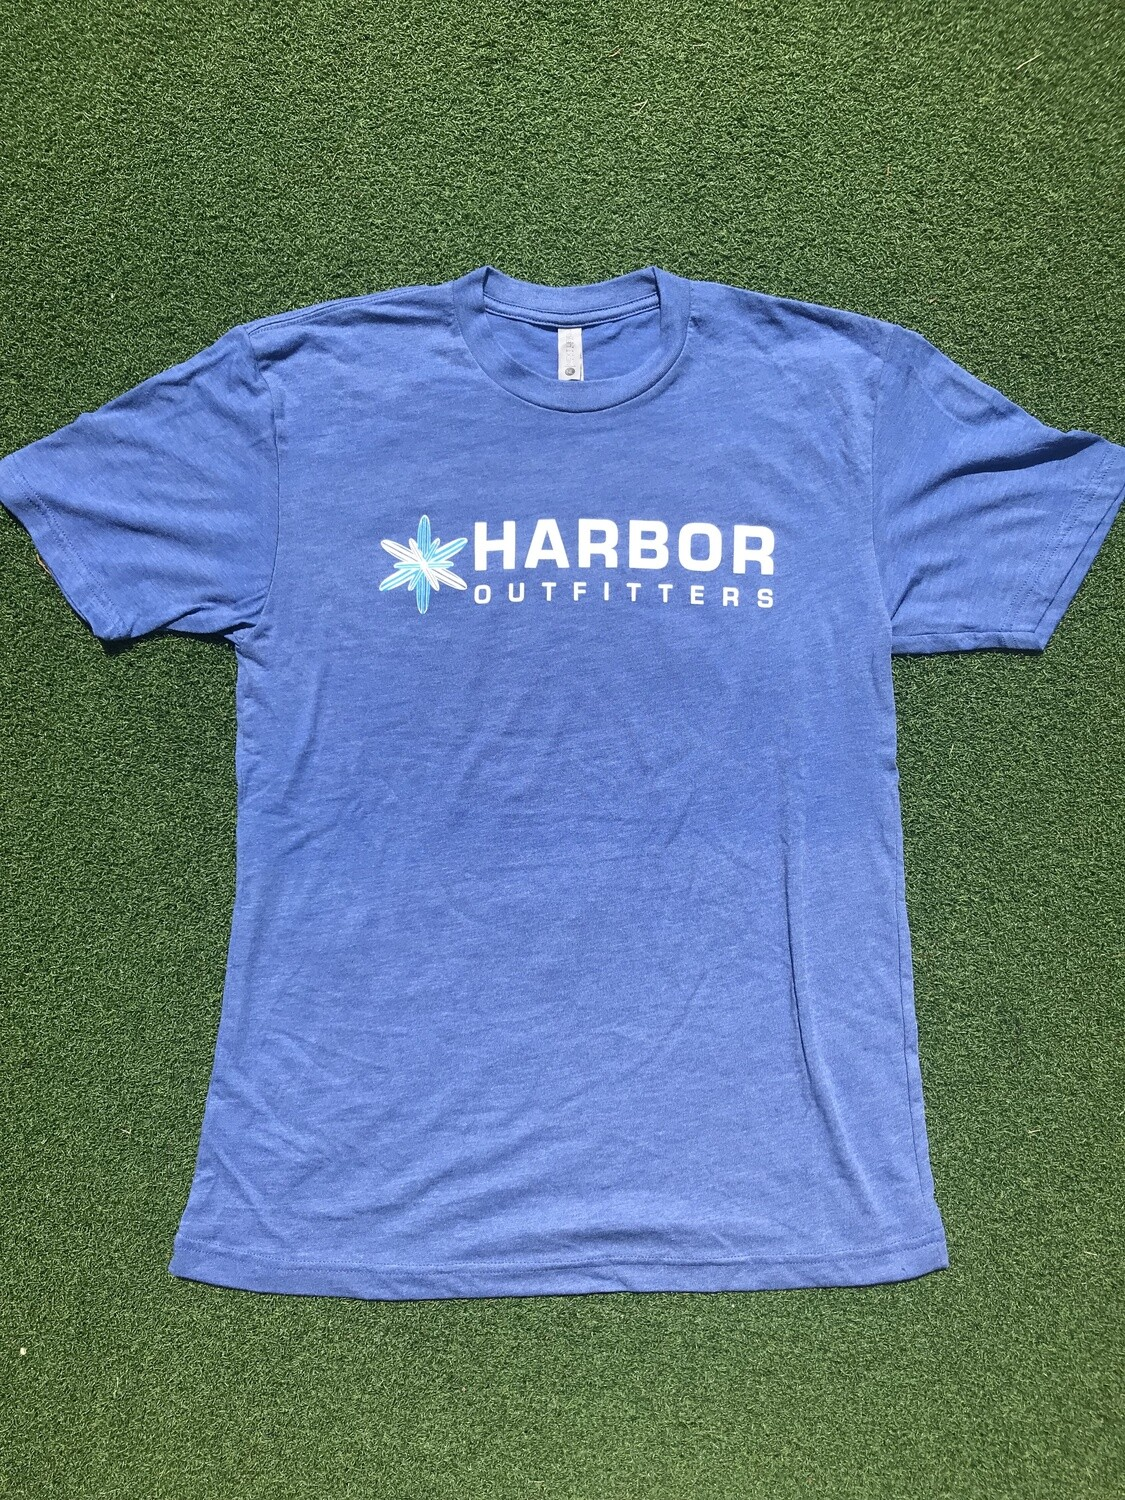 Harbor Outfitters Tee-Shirt